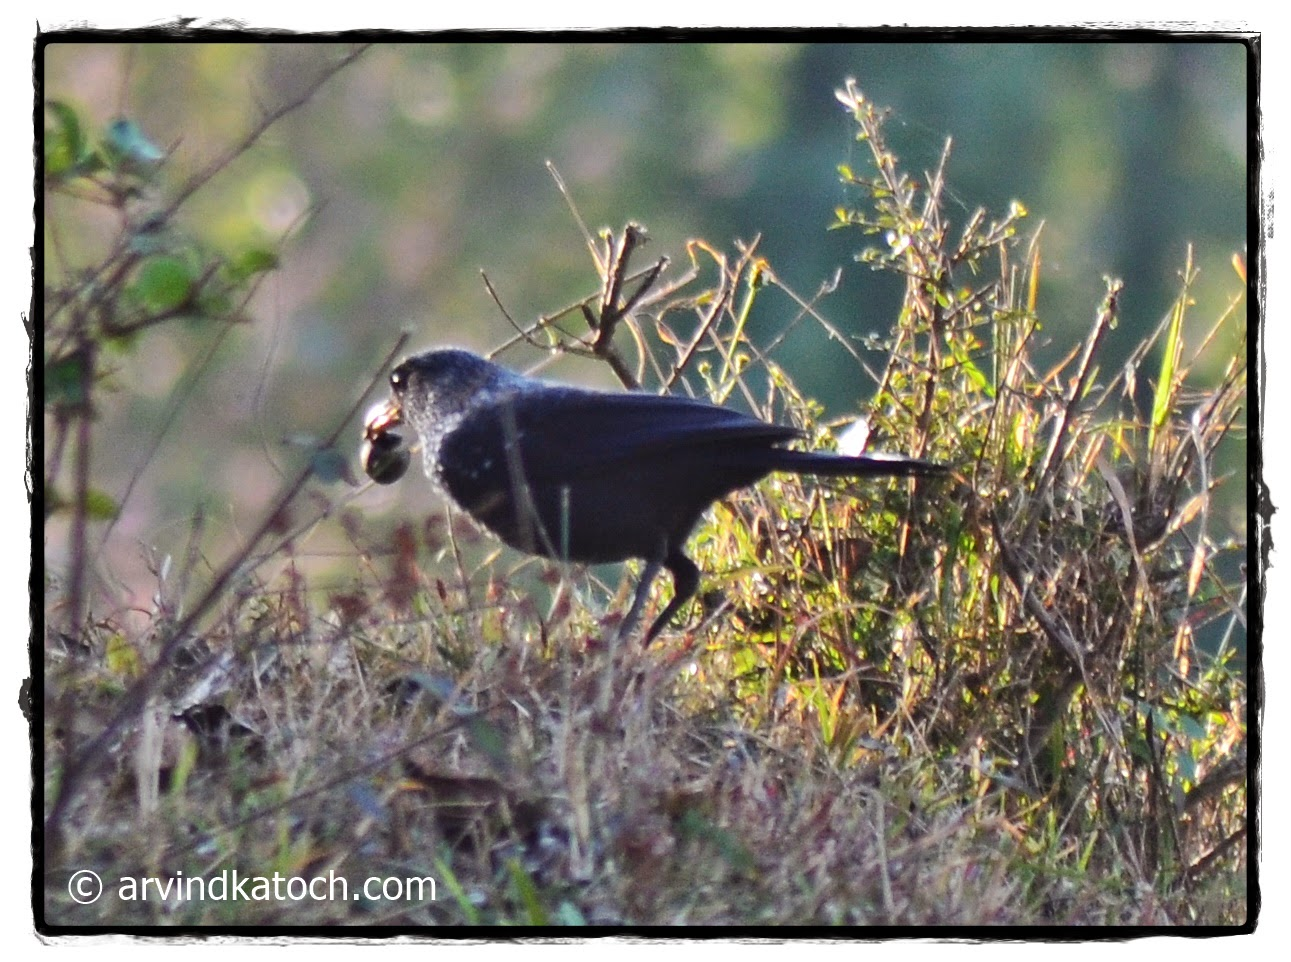 Blue Whistling Thrush, Nut, Beak